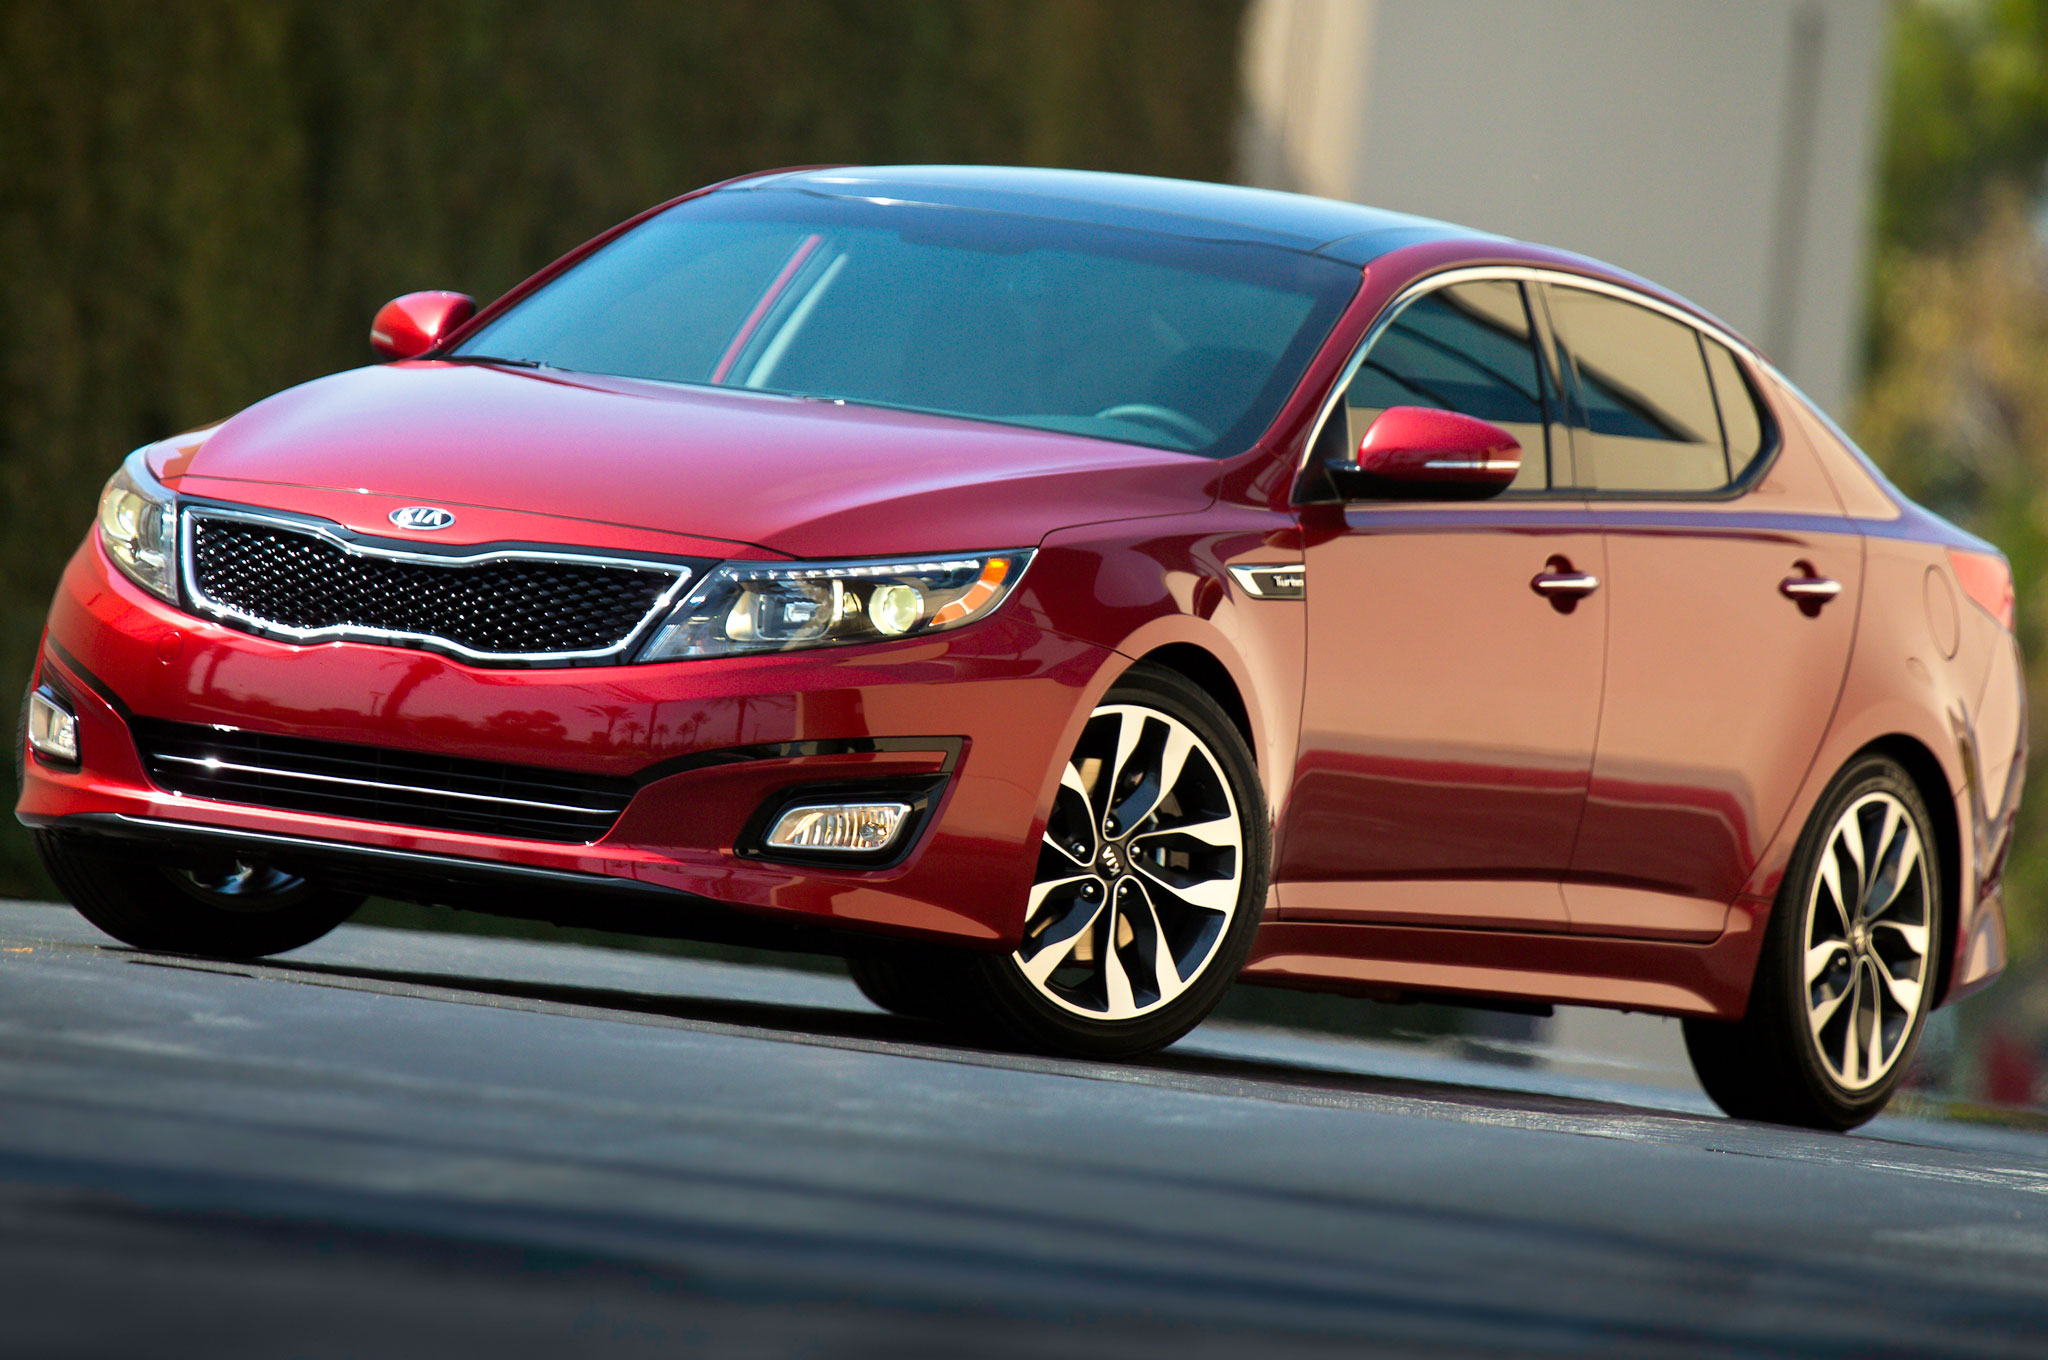 Superior Refreshed 2014 Kia Optima Priced At $22,300, Loaded SX L At $37,100